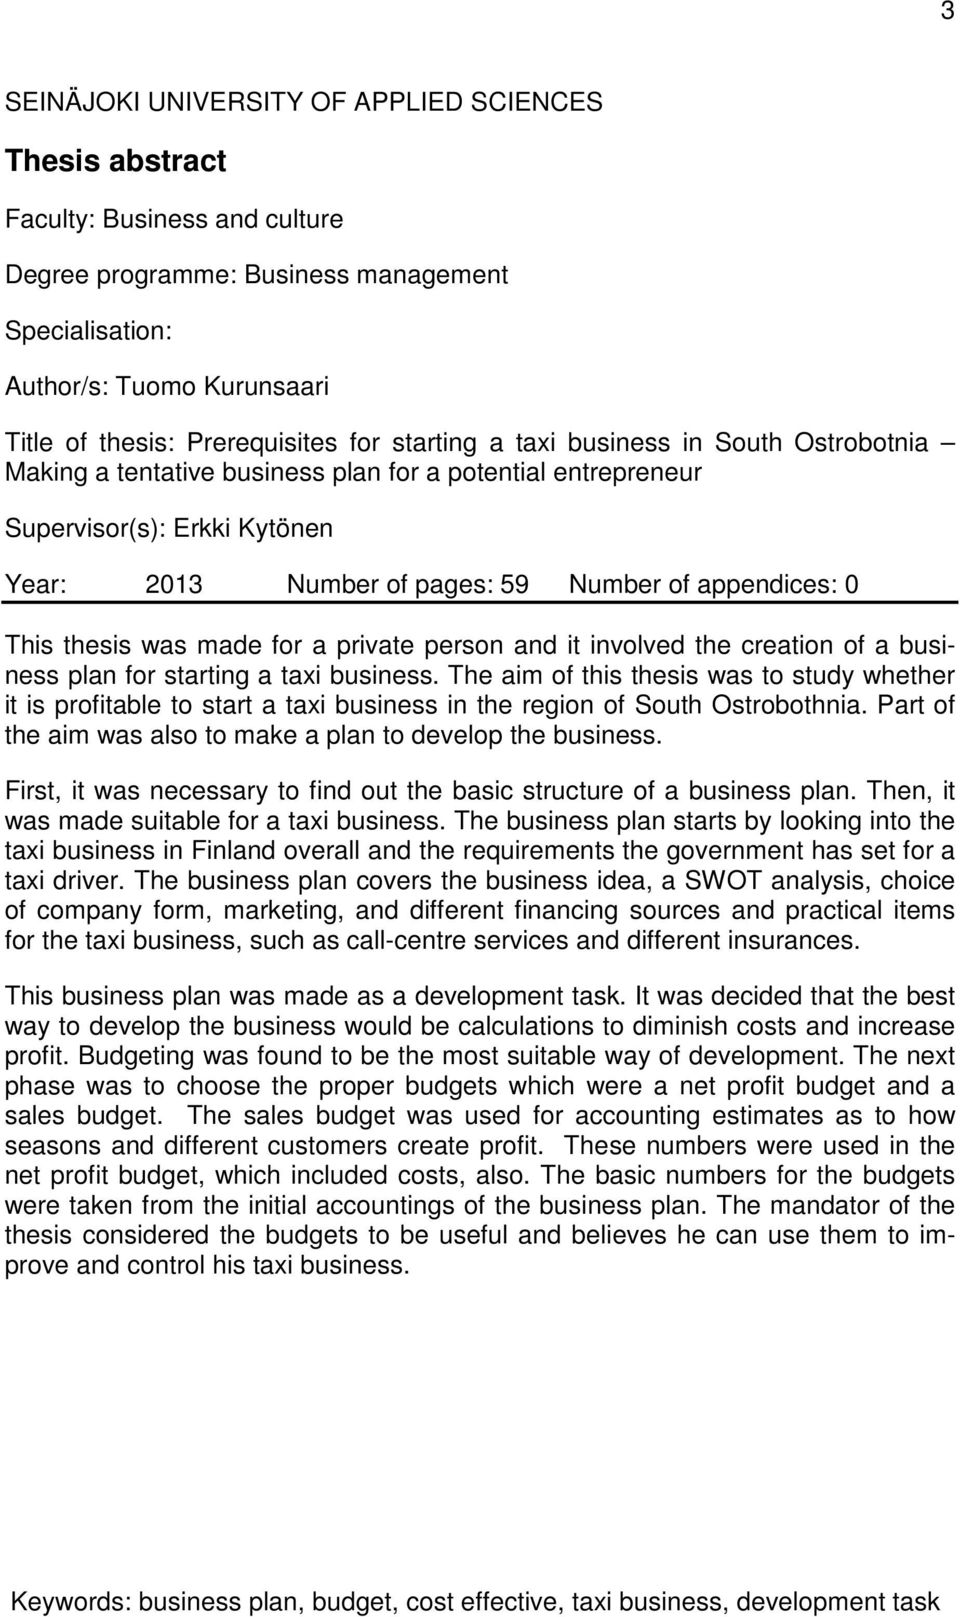 appendices: 0 This thesis was made for a private person and it involved the creation of a business plan for starting a taxi business.